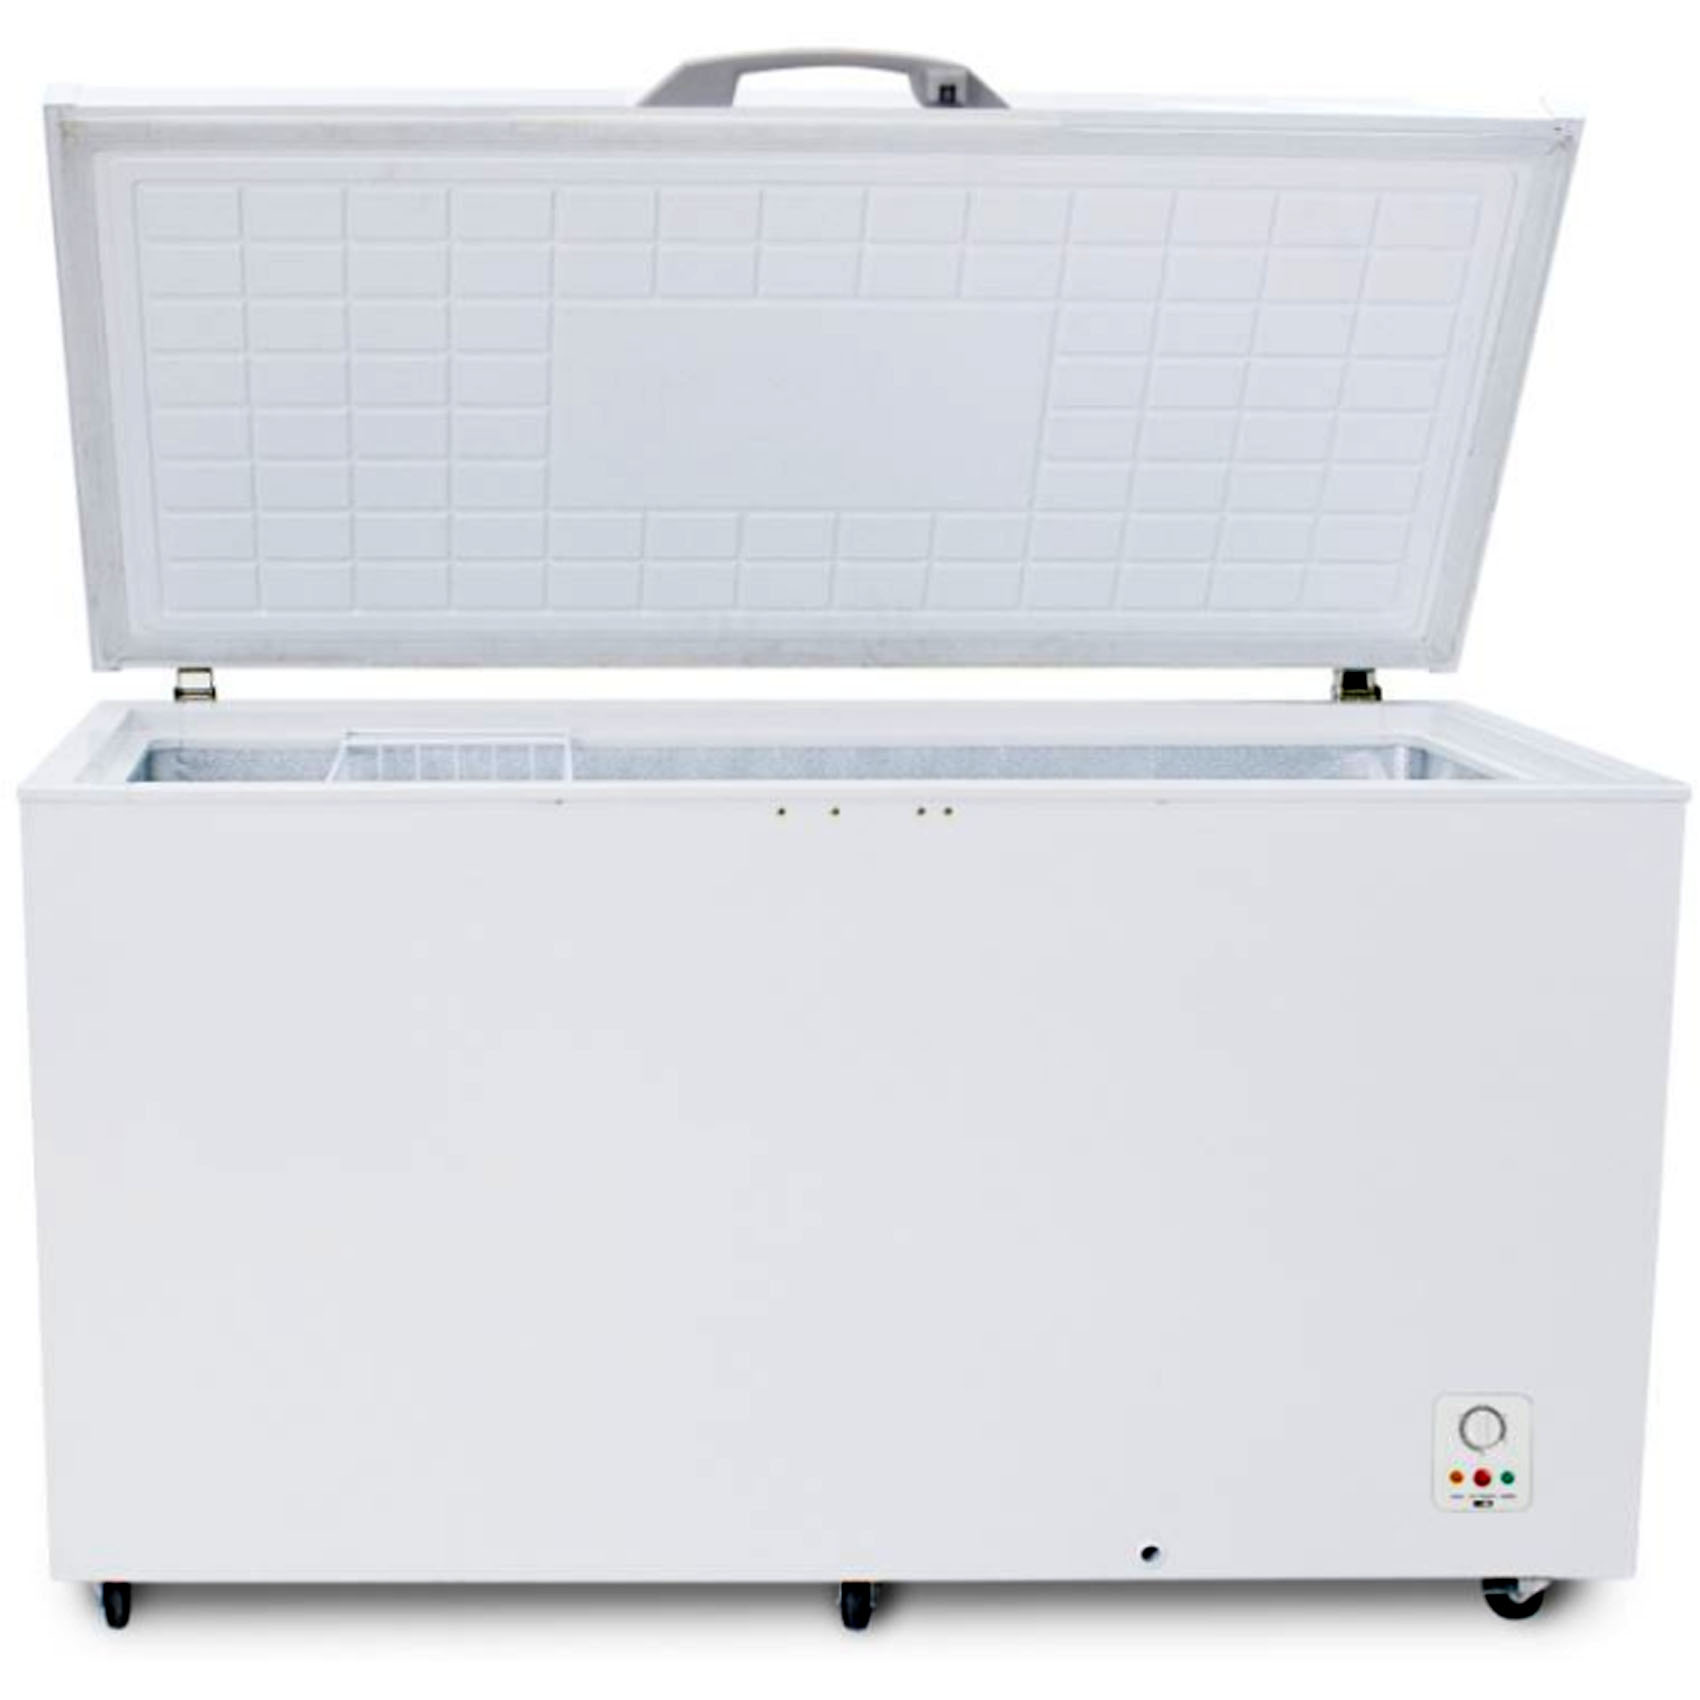 Buy Daewoo Chest Freezer 530 Liters Dcf 525 Online In Uae 100 Box 530l